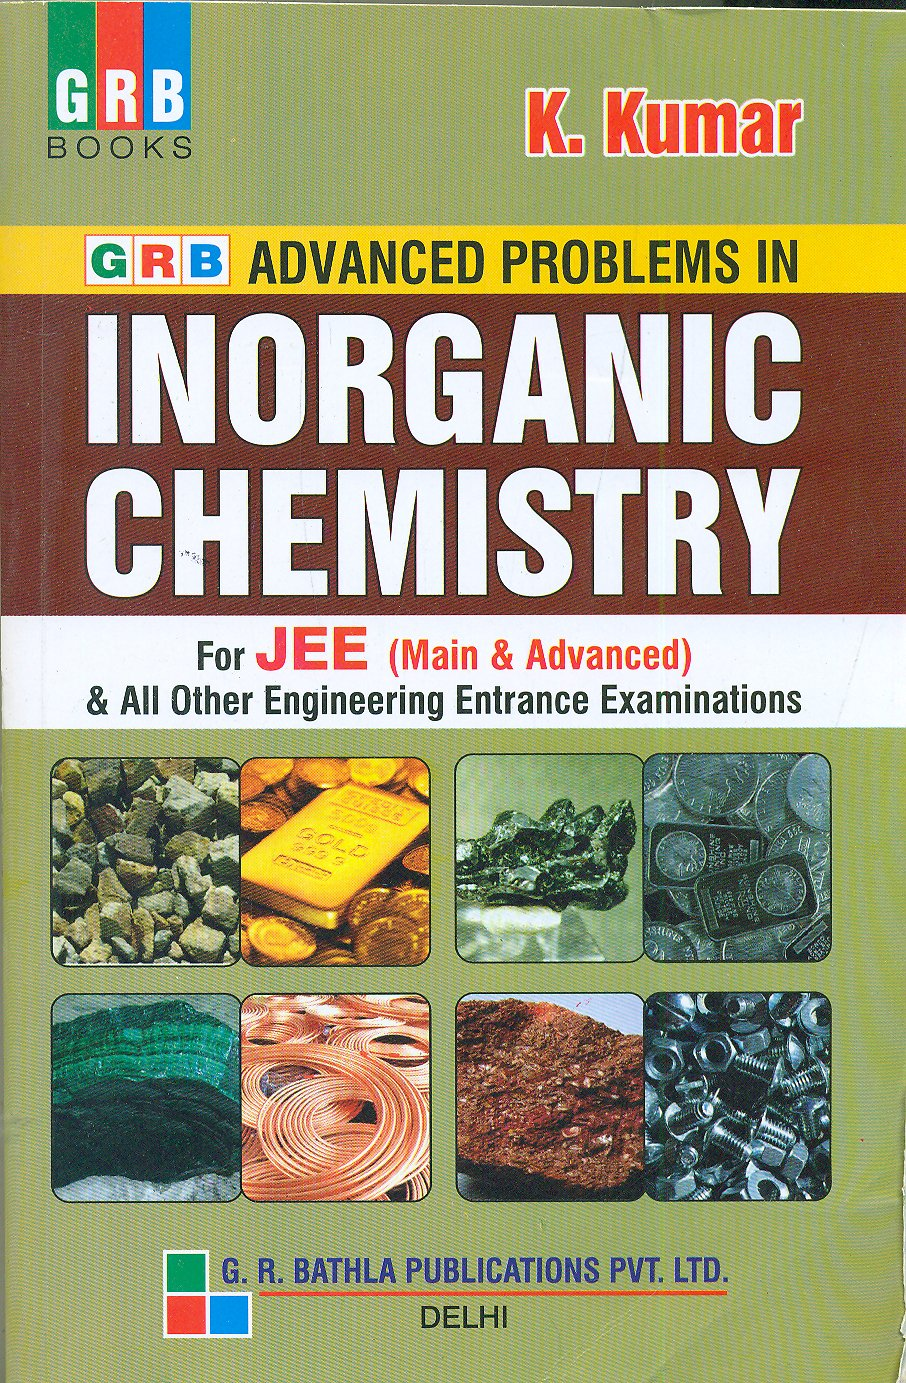 in buy new pattern advanced problem in inorganic chemistry in buy new pattern advanced problem in inorganic chemistry for jee book online at low prices in new pattern advanced problem in inorganic